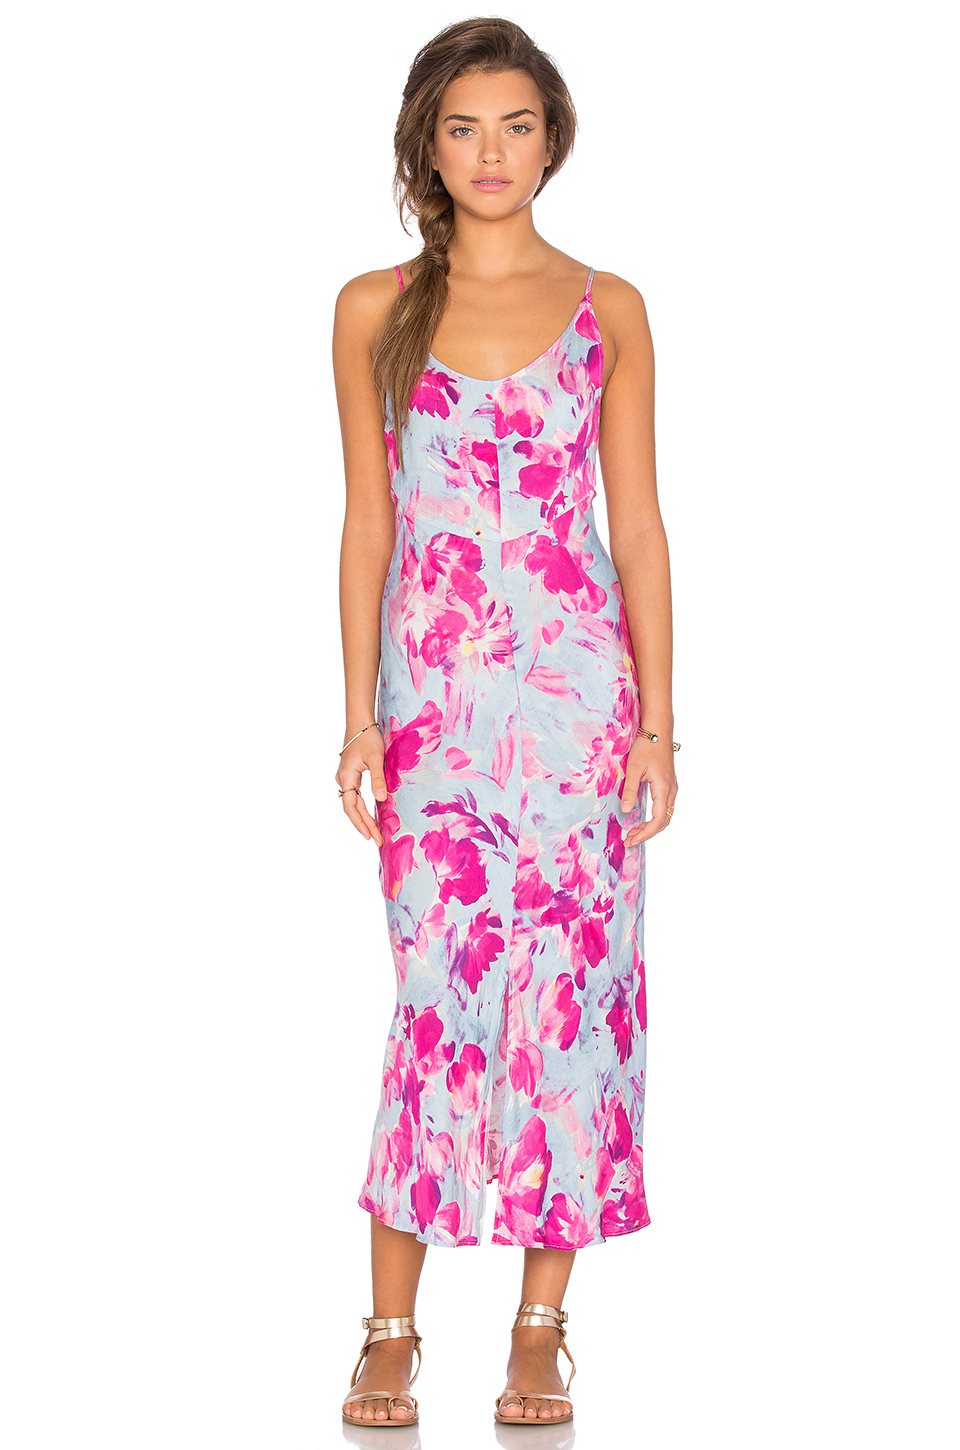 f61c8a6ccc Somedays Lovin Pintura Floral Maxi Dress in Pink - Lyst